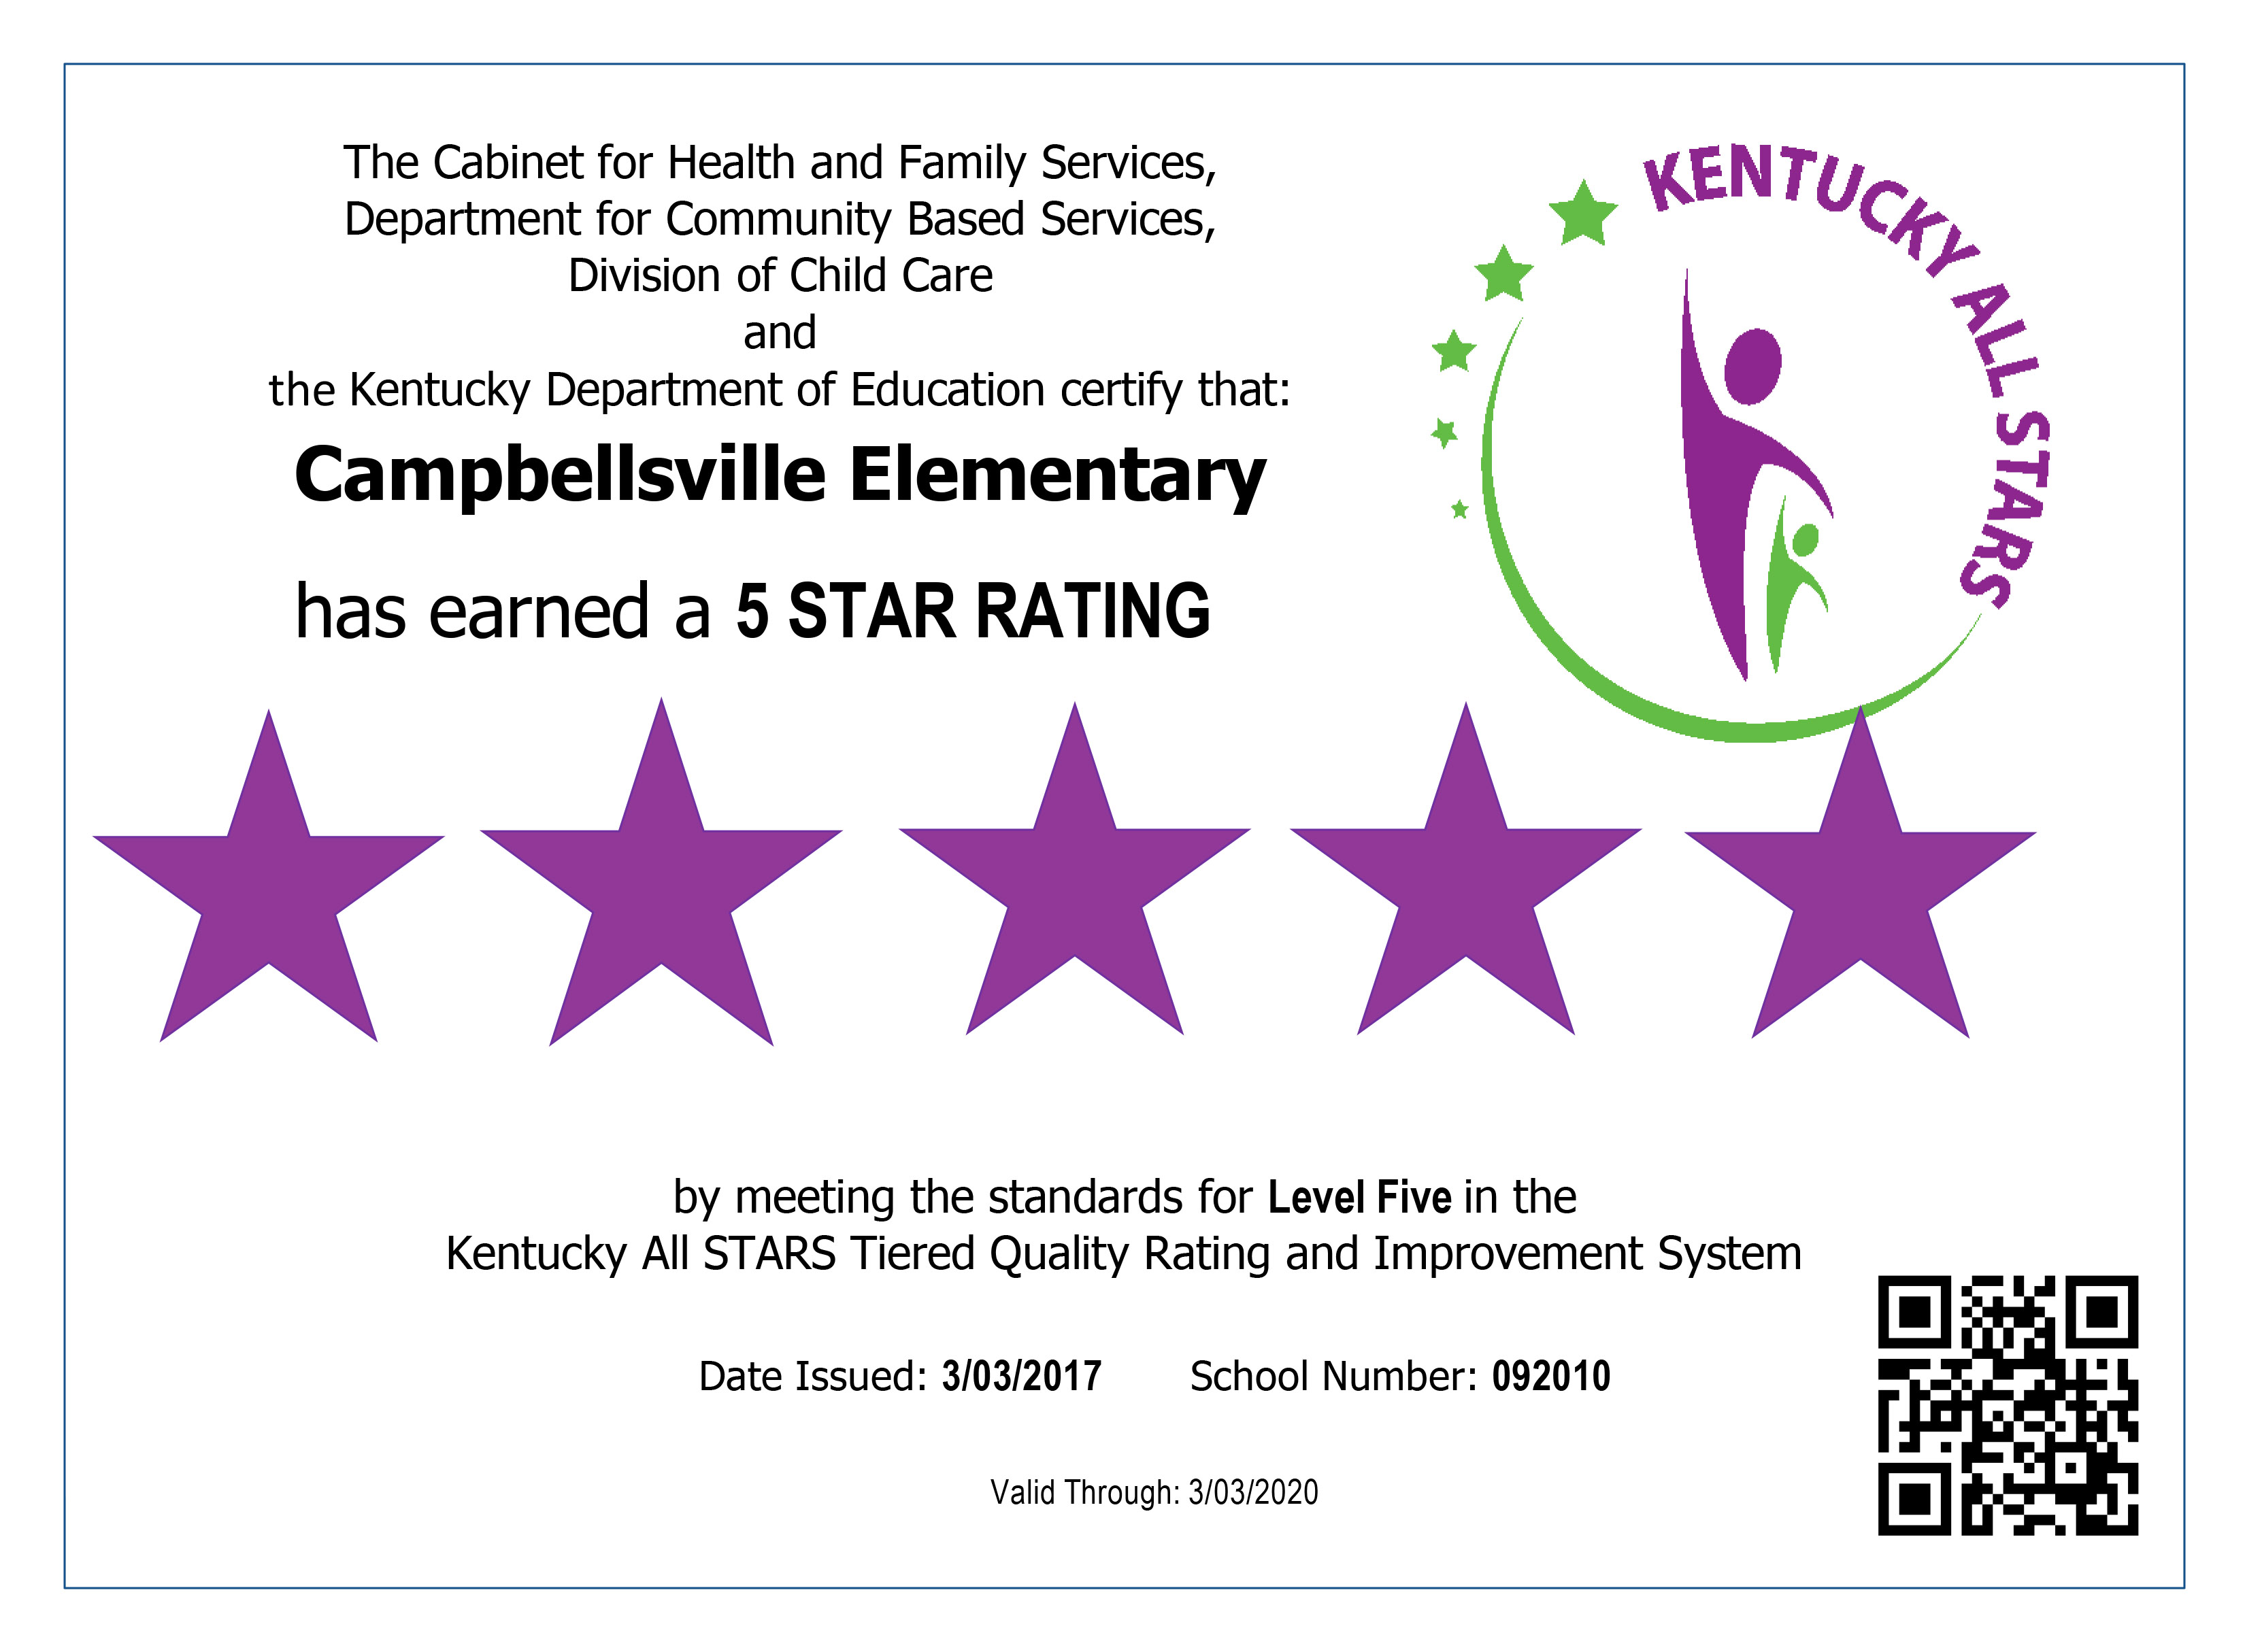 Campbellsville Elementary School preschool program was recently reviewed and has received the highest rating possible – five stars – in the Kentucky All STARS program.